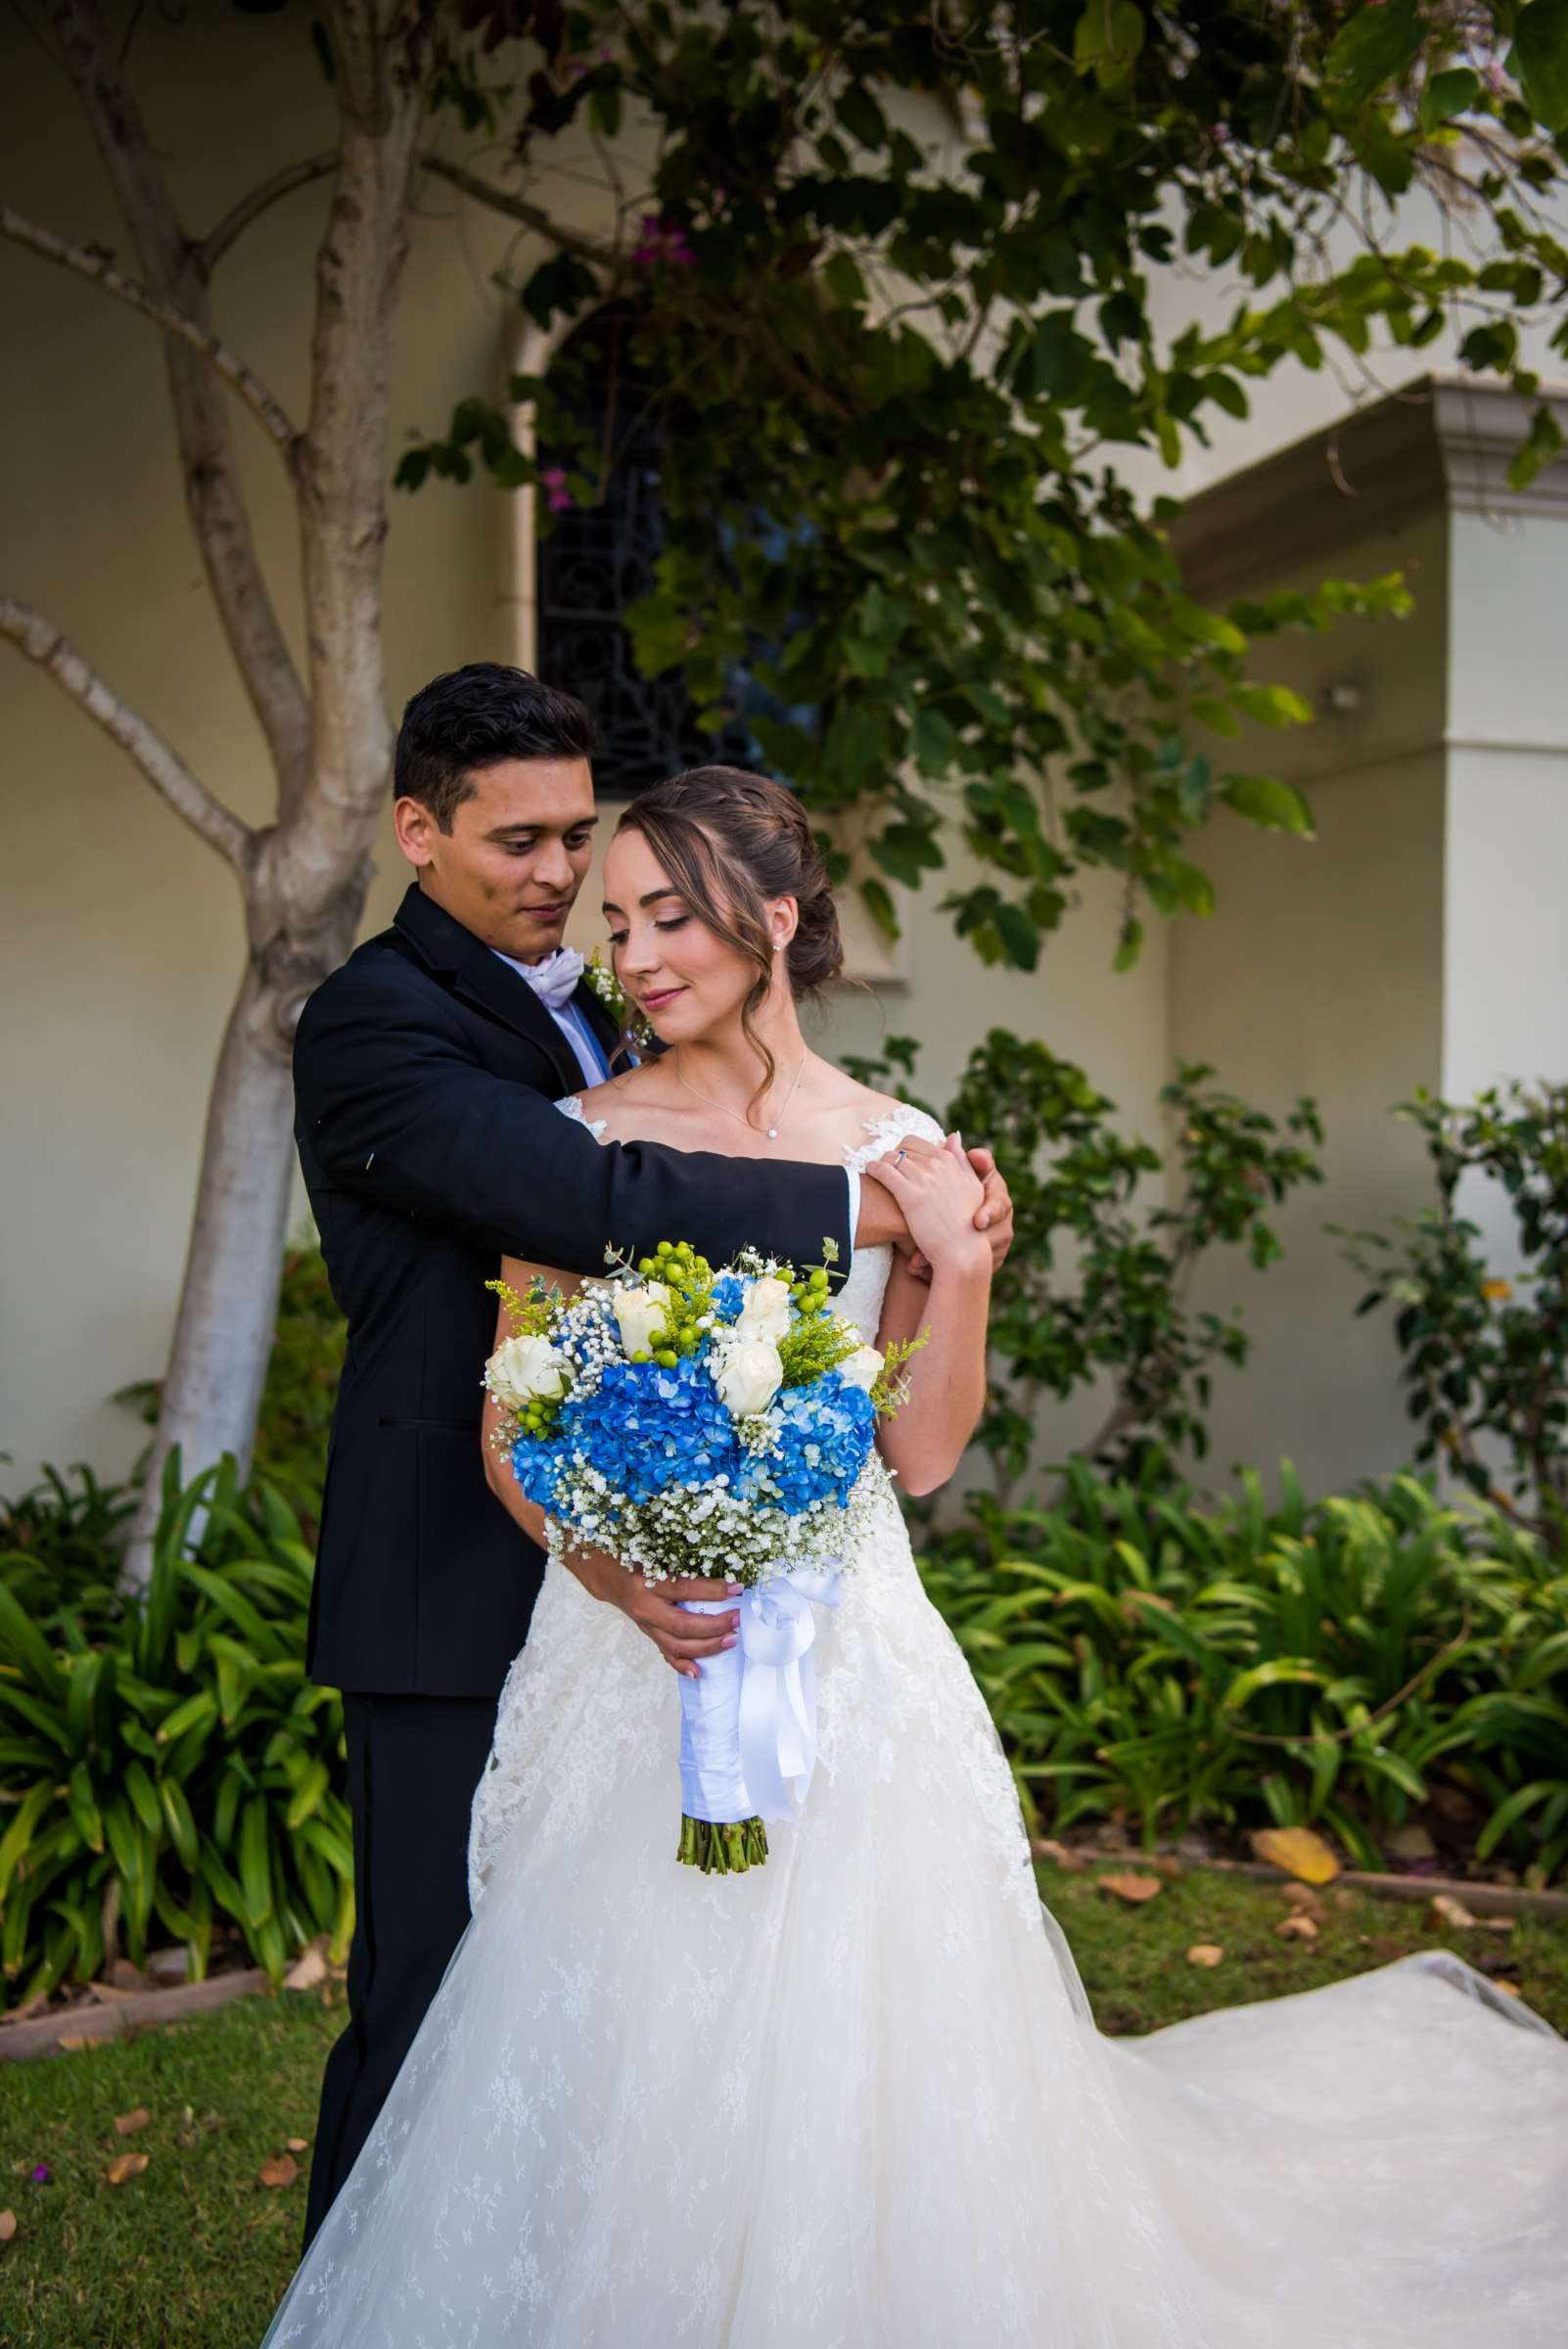 The Immaculata Wedding, Arianna and Jonah Wedding Photo #88 by True Photography